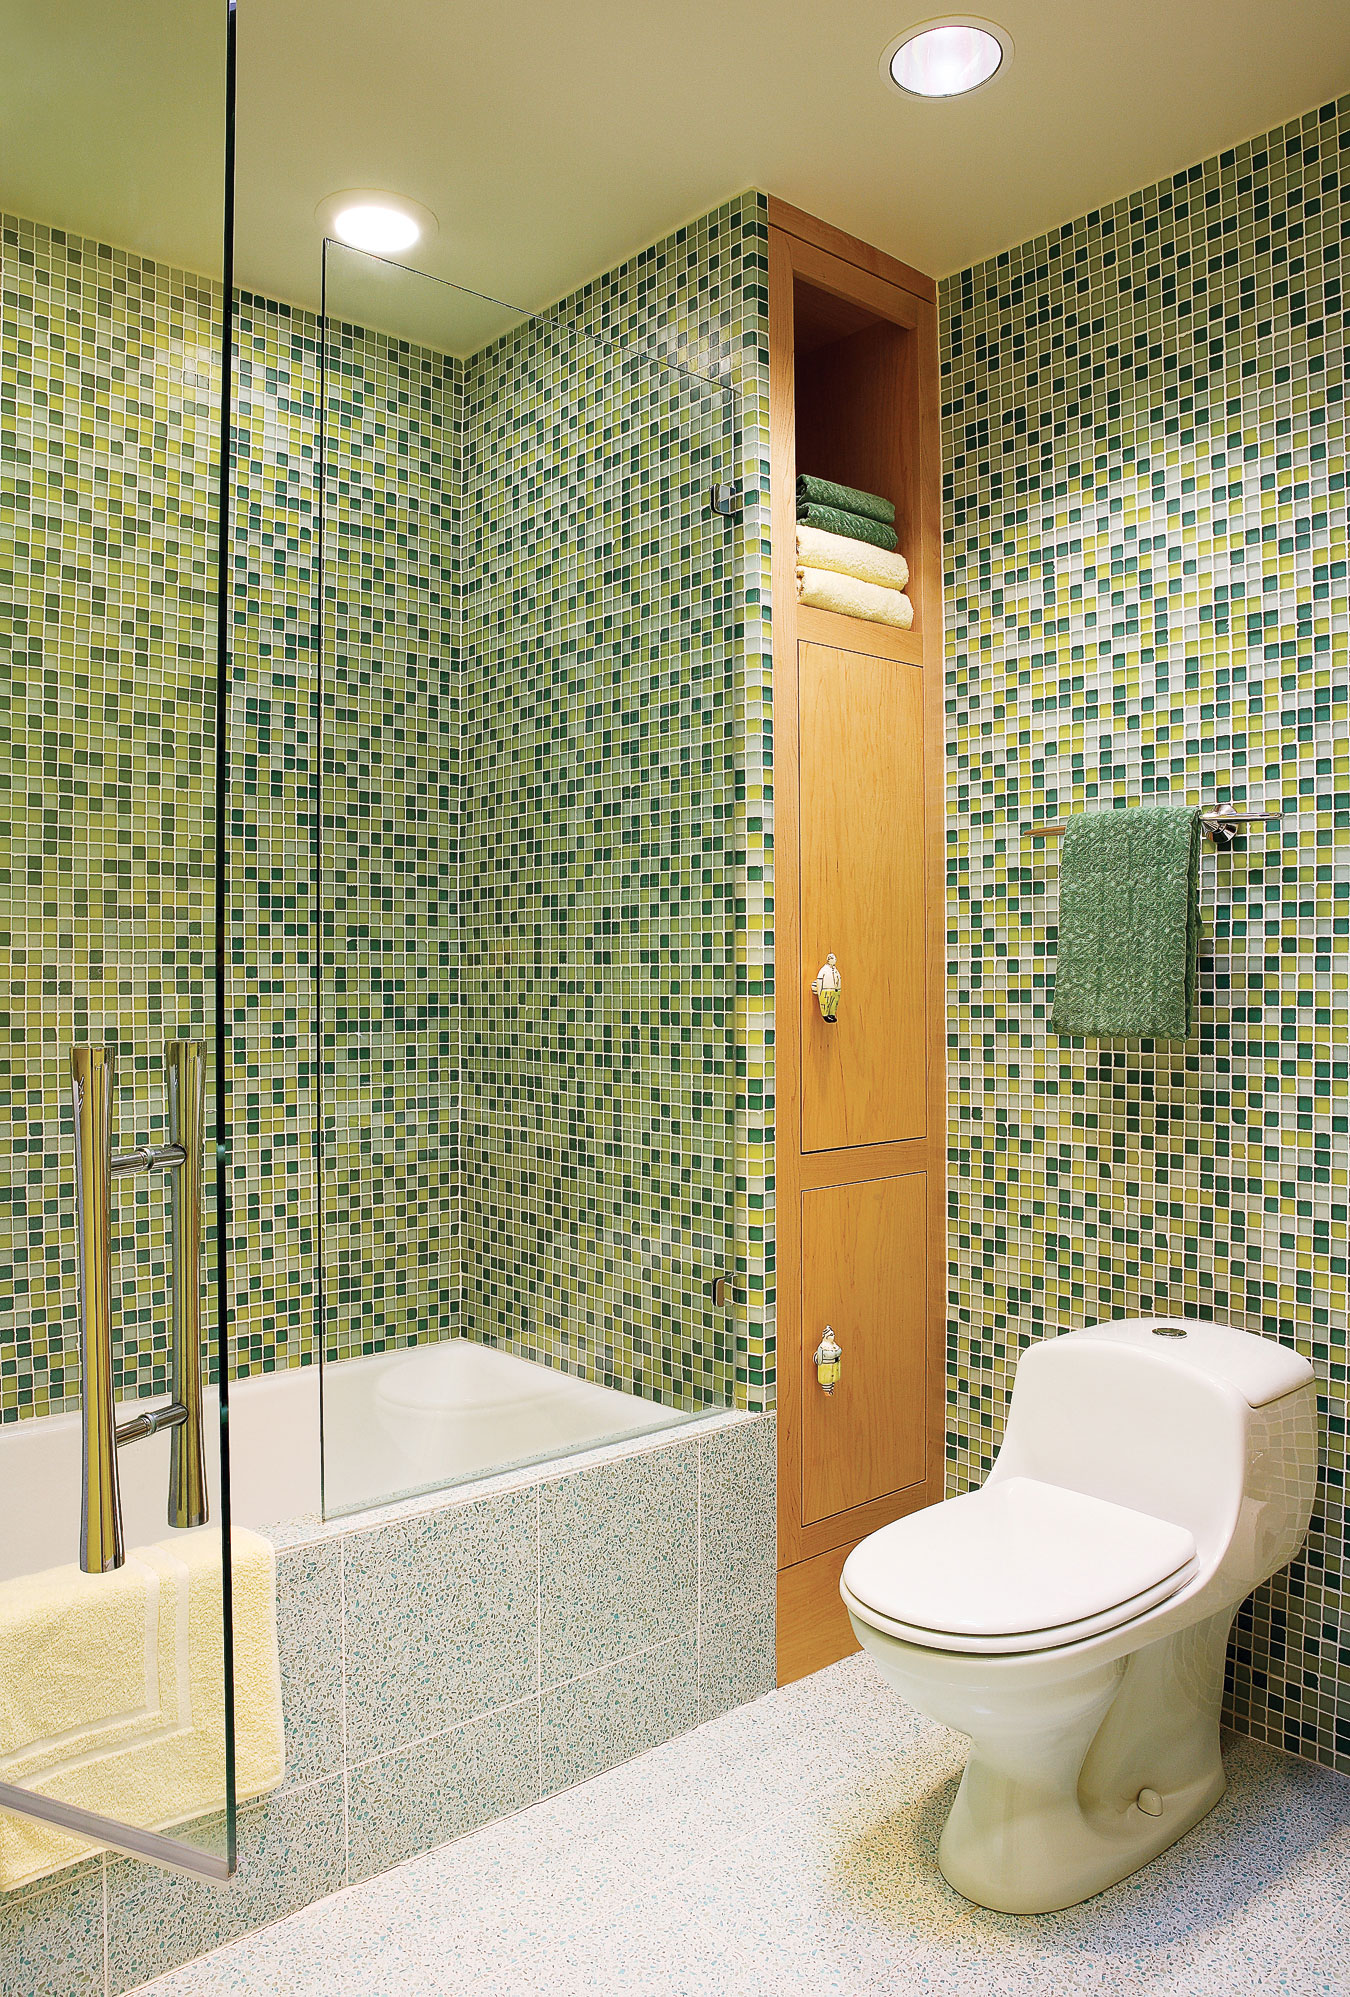 13 creative bathroom tile ideas sunset magazine mosaic shower wall dailygadgetfo Choice Image